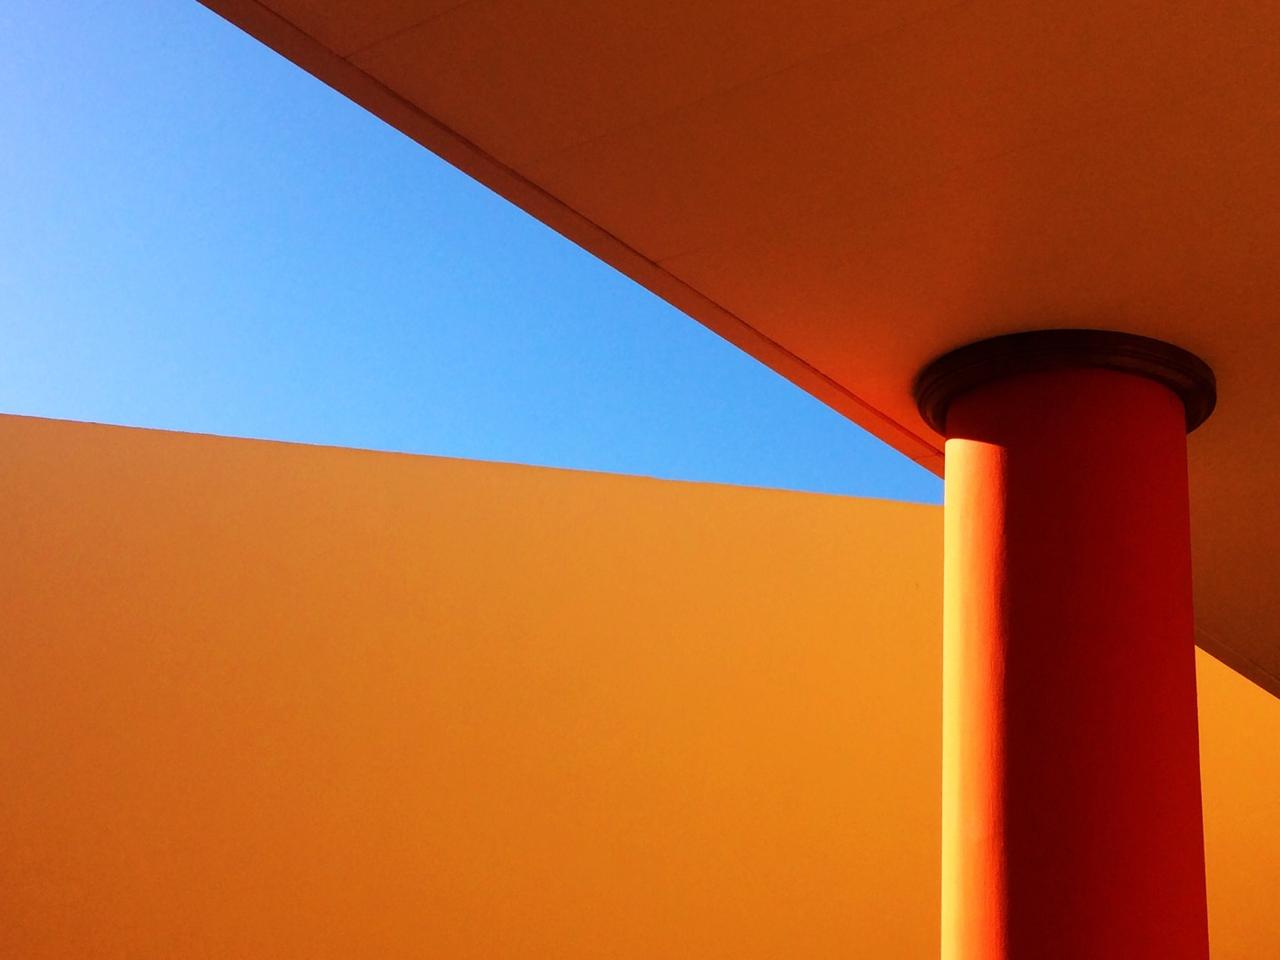 Mette Bruus does an excellent job of slicing the sky with different shades of warm orange